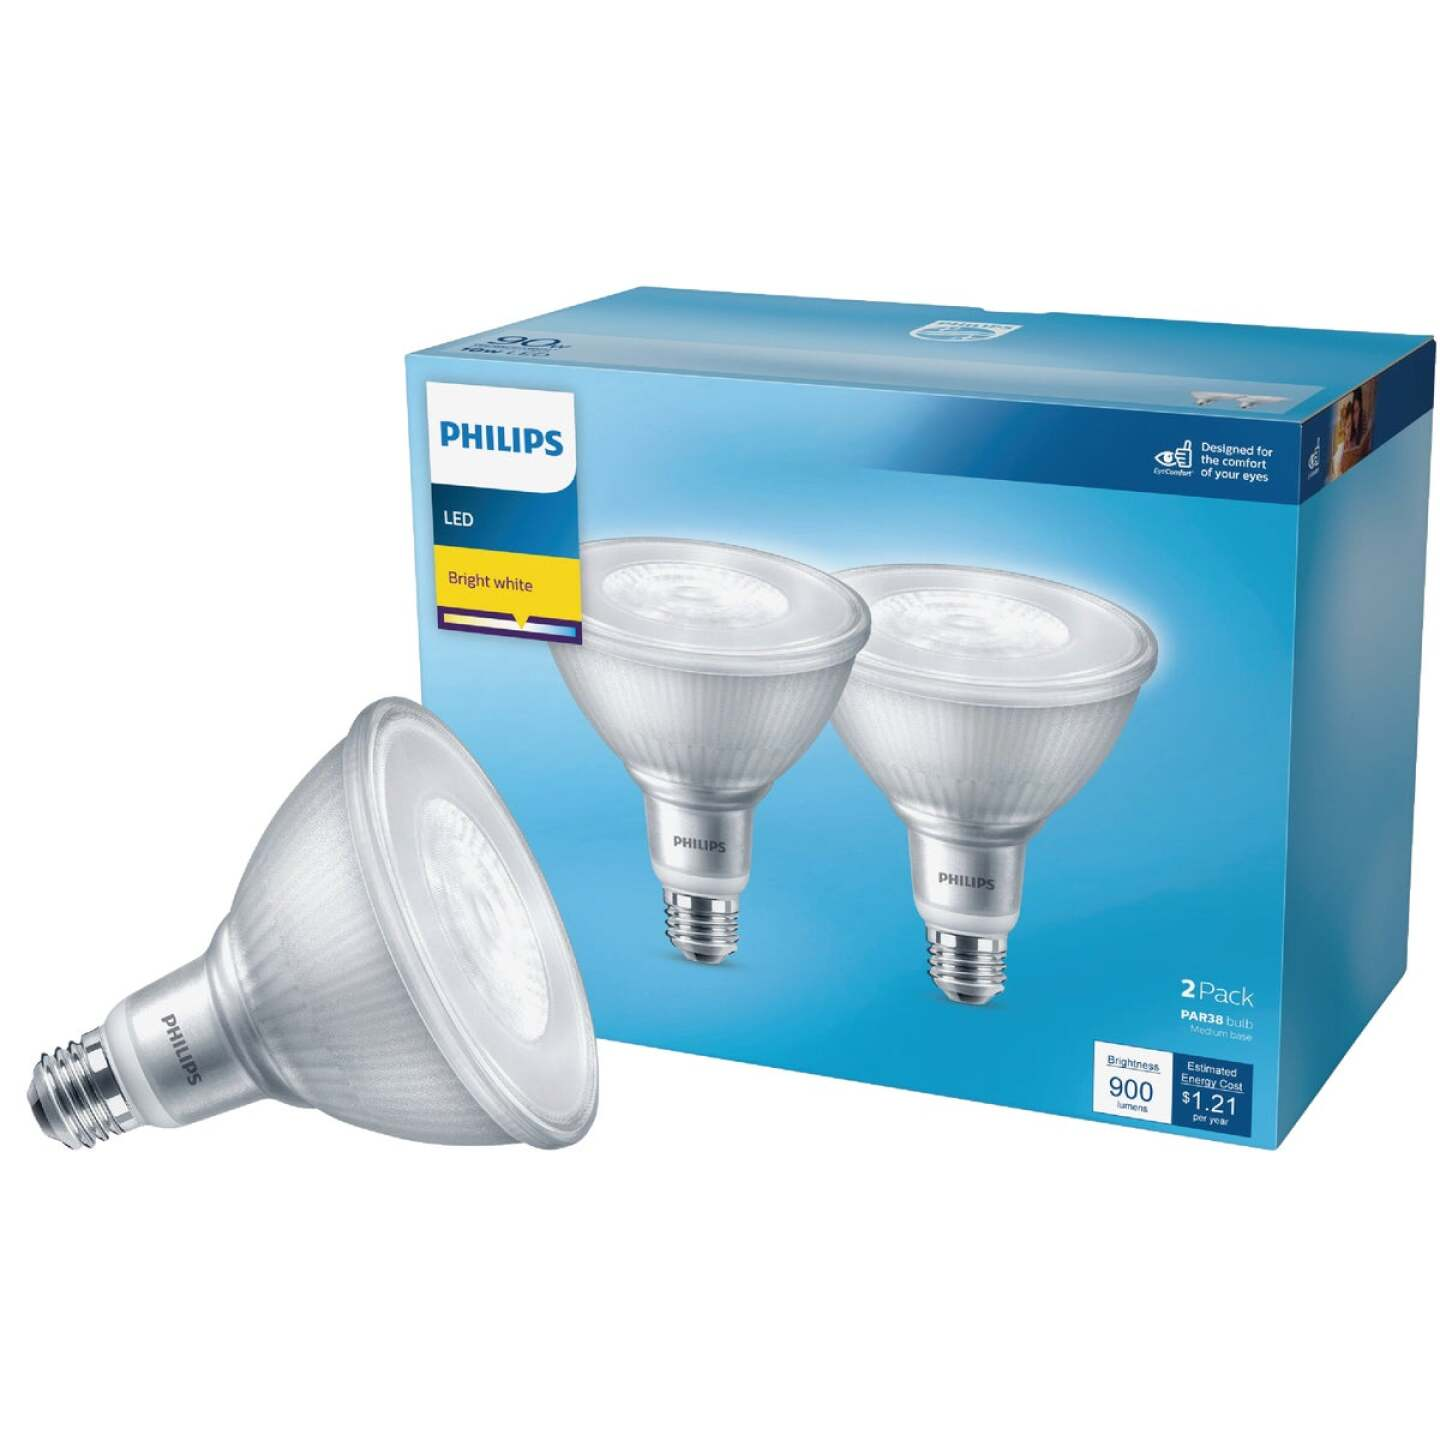 Philips 90W Equivalent Bright White PAR38 Medium LED Floodlight Light Bulb (2-Pack) Image 1